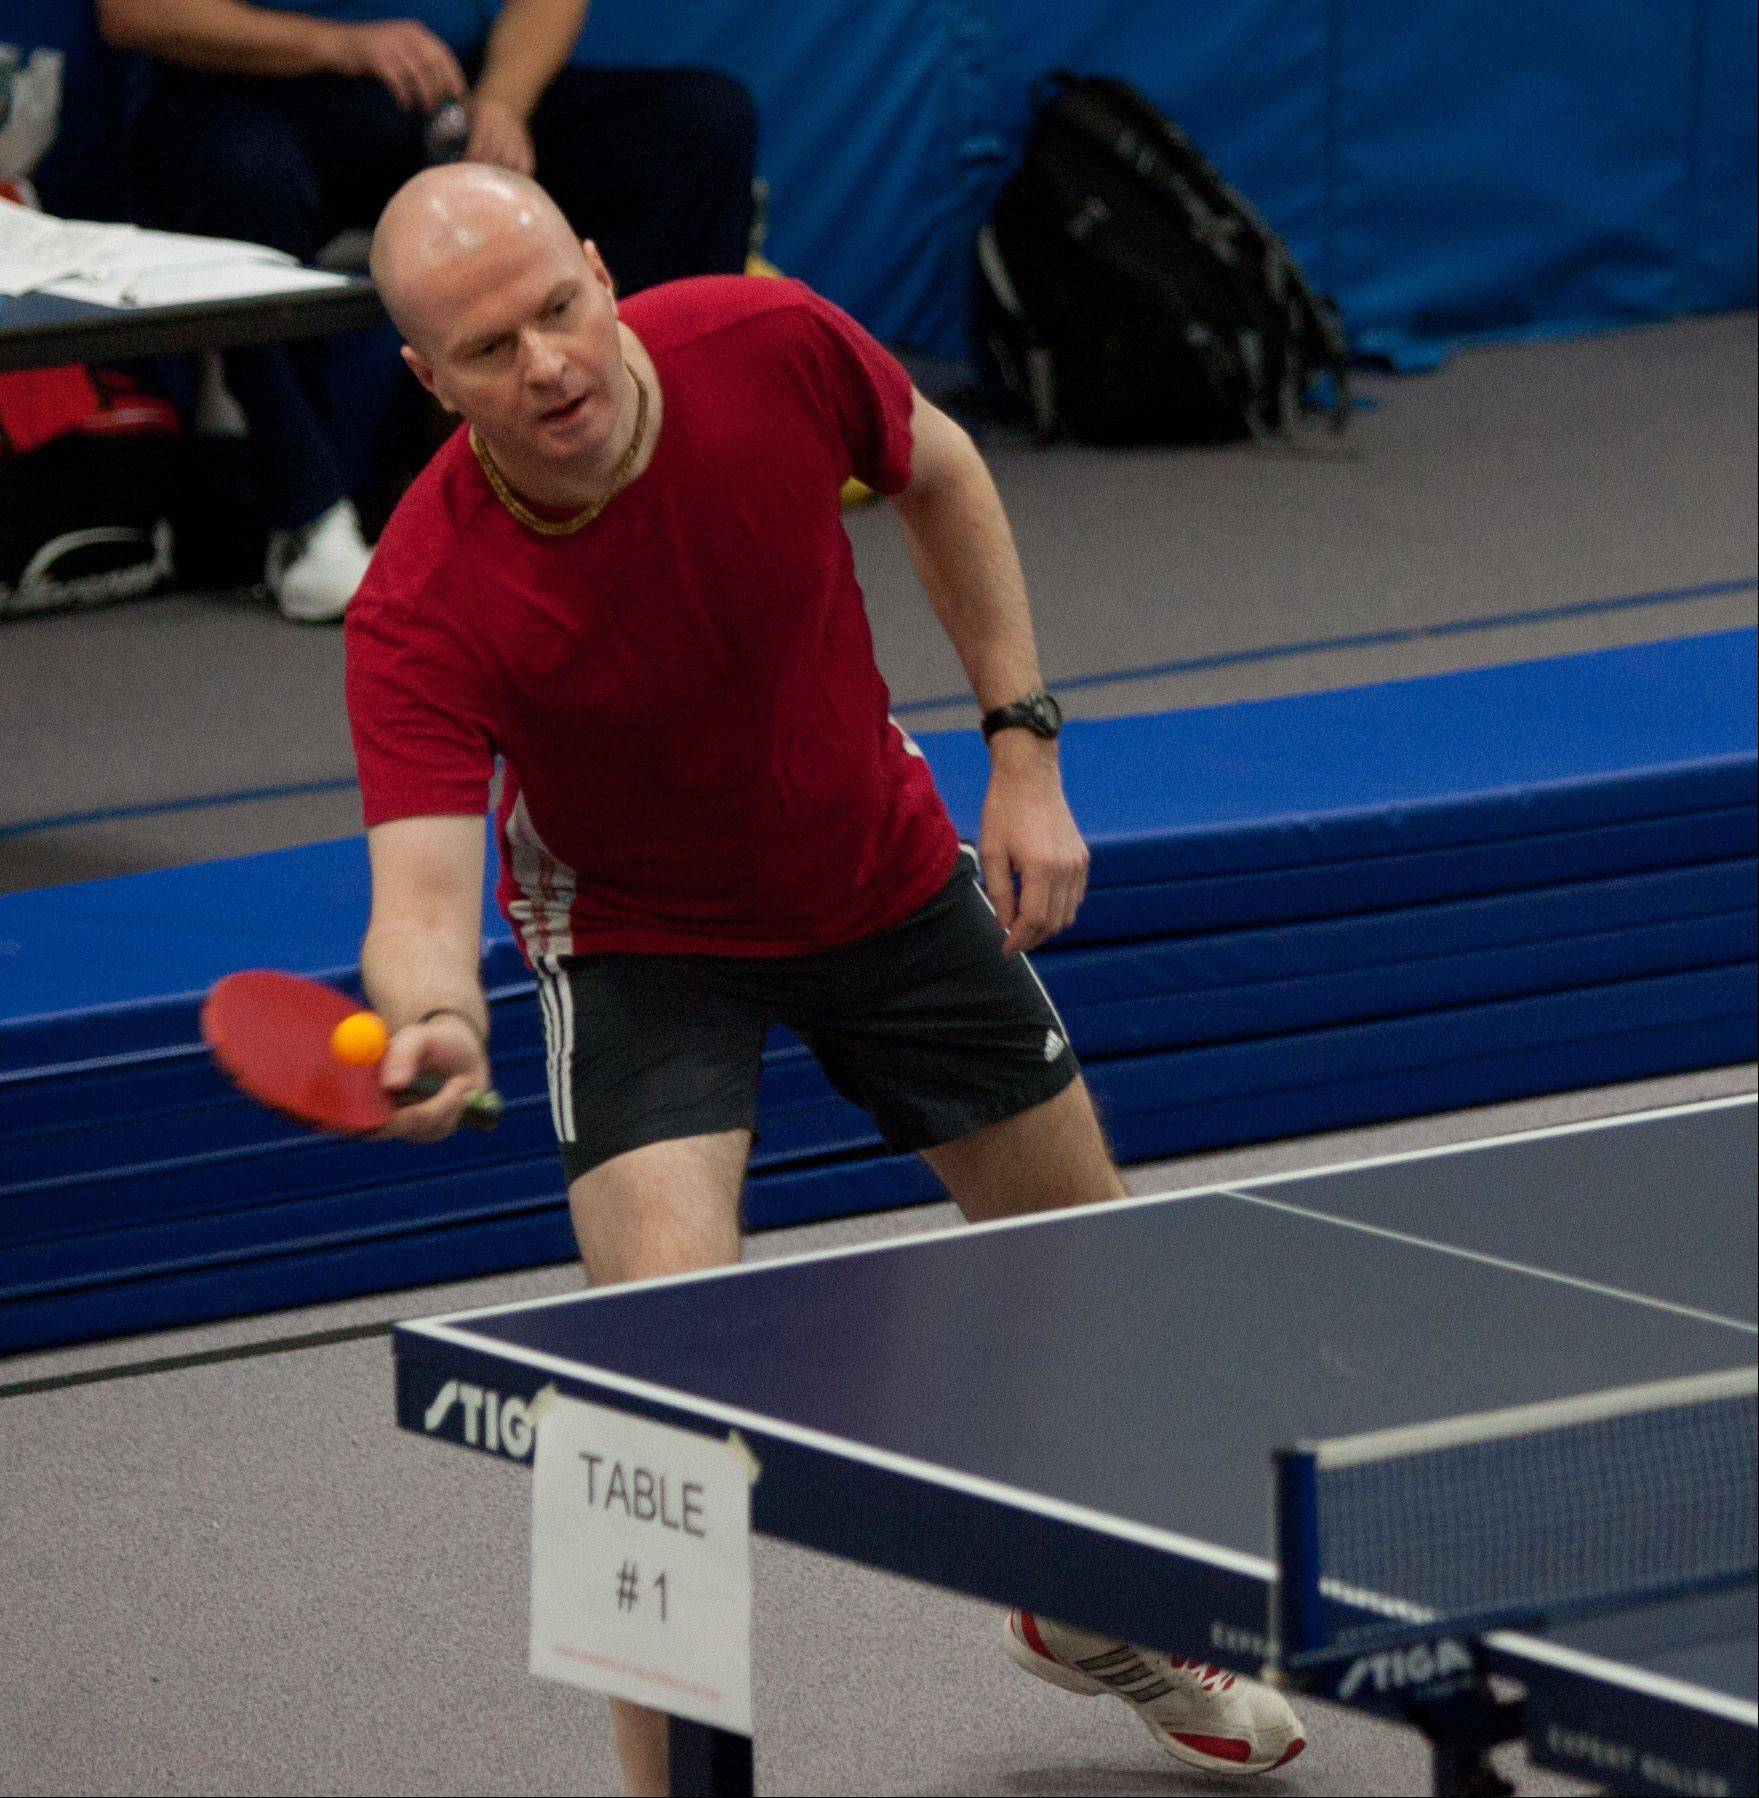 Jacek Wisniewski of Naperville returns a volley Saturday during the annual table tennis championships held by the Naperville Park District and the Naperville Table Tennis Club.